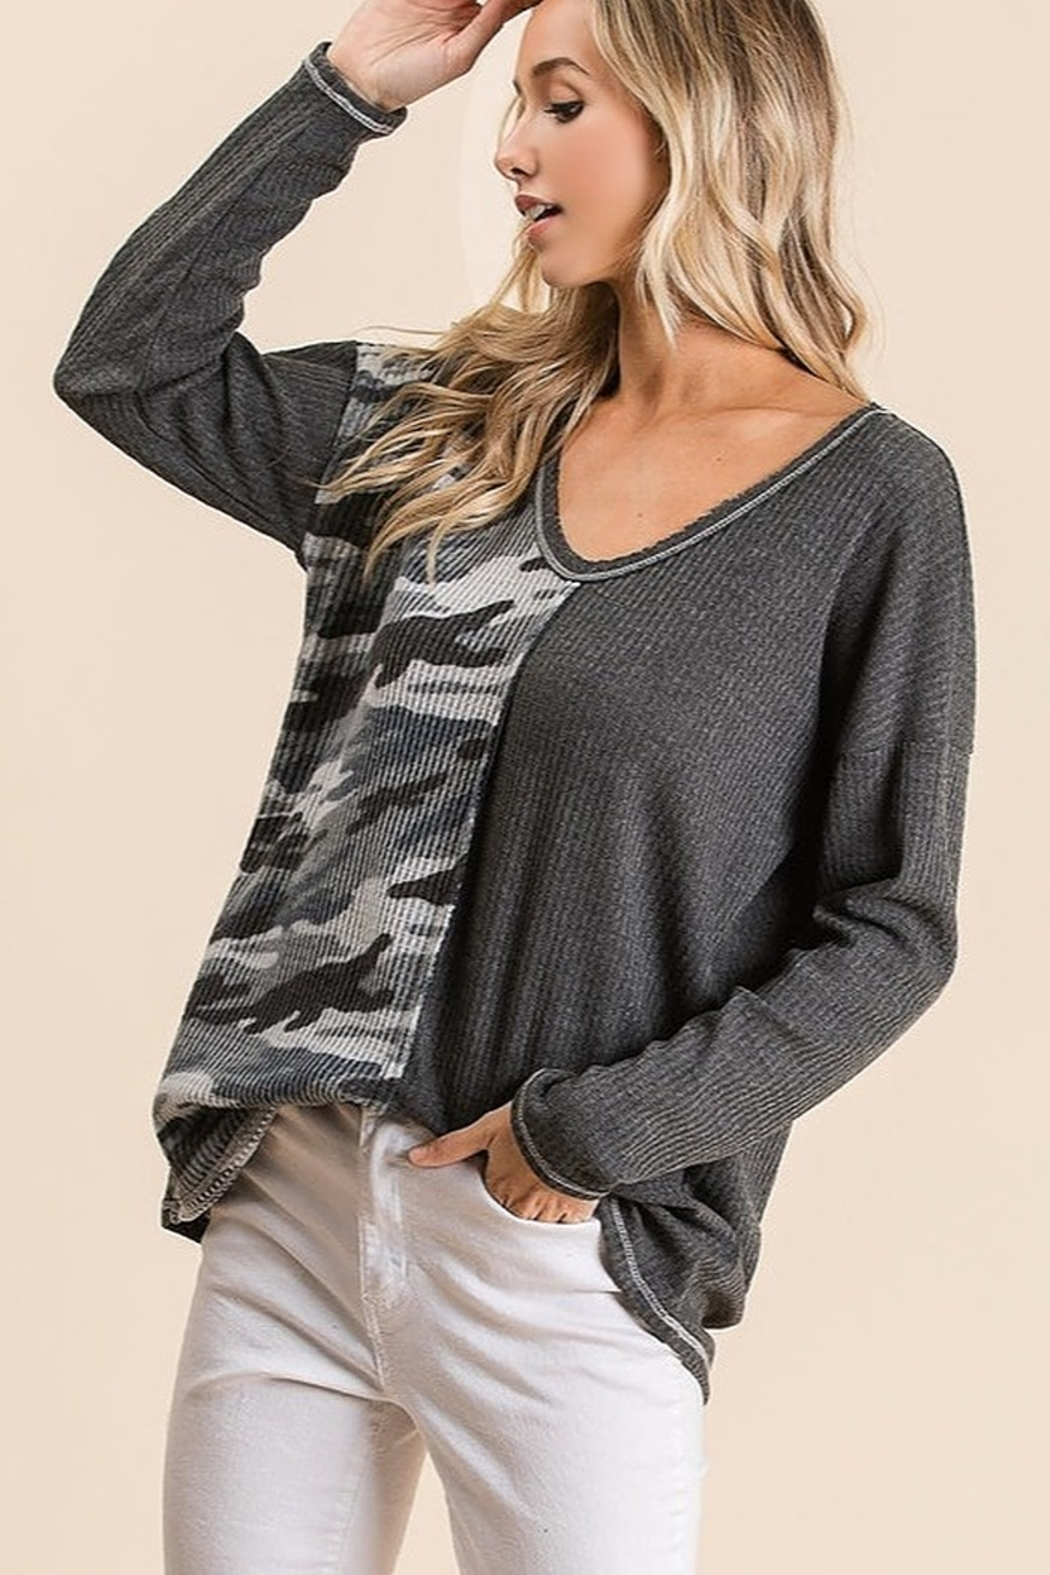 Bibi THERMAL WAFFLE DEEP V NECK TOP WITH CAMOUFLAGE - Side Cropped Image